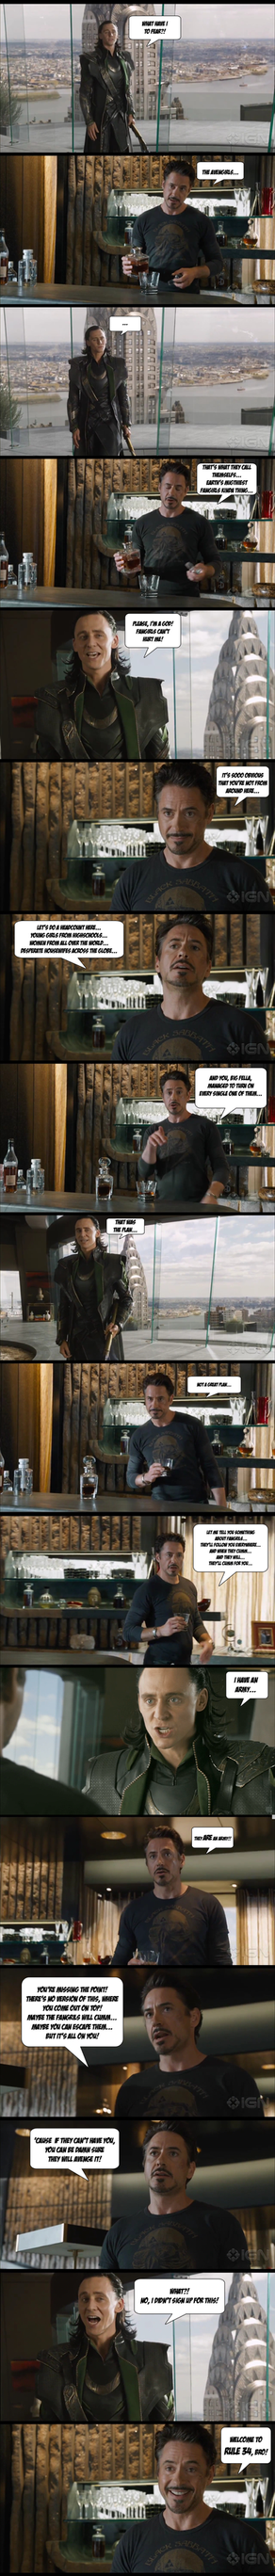 Avengers: Loki vs Tony Stark and The Avengirls by yourparodies